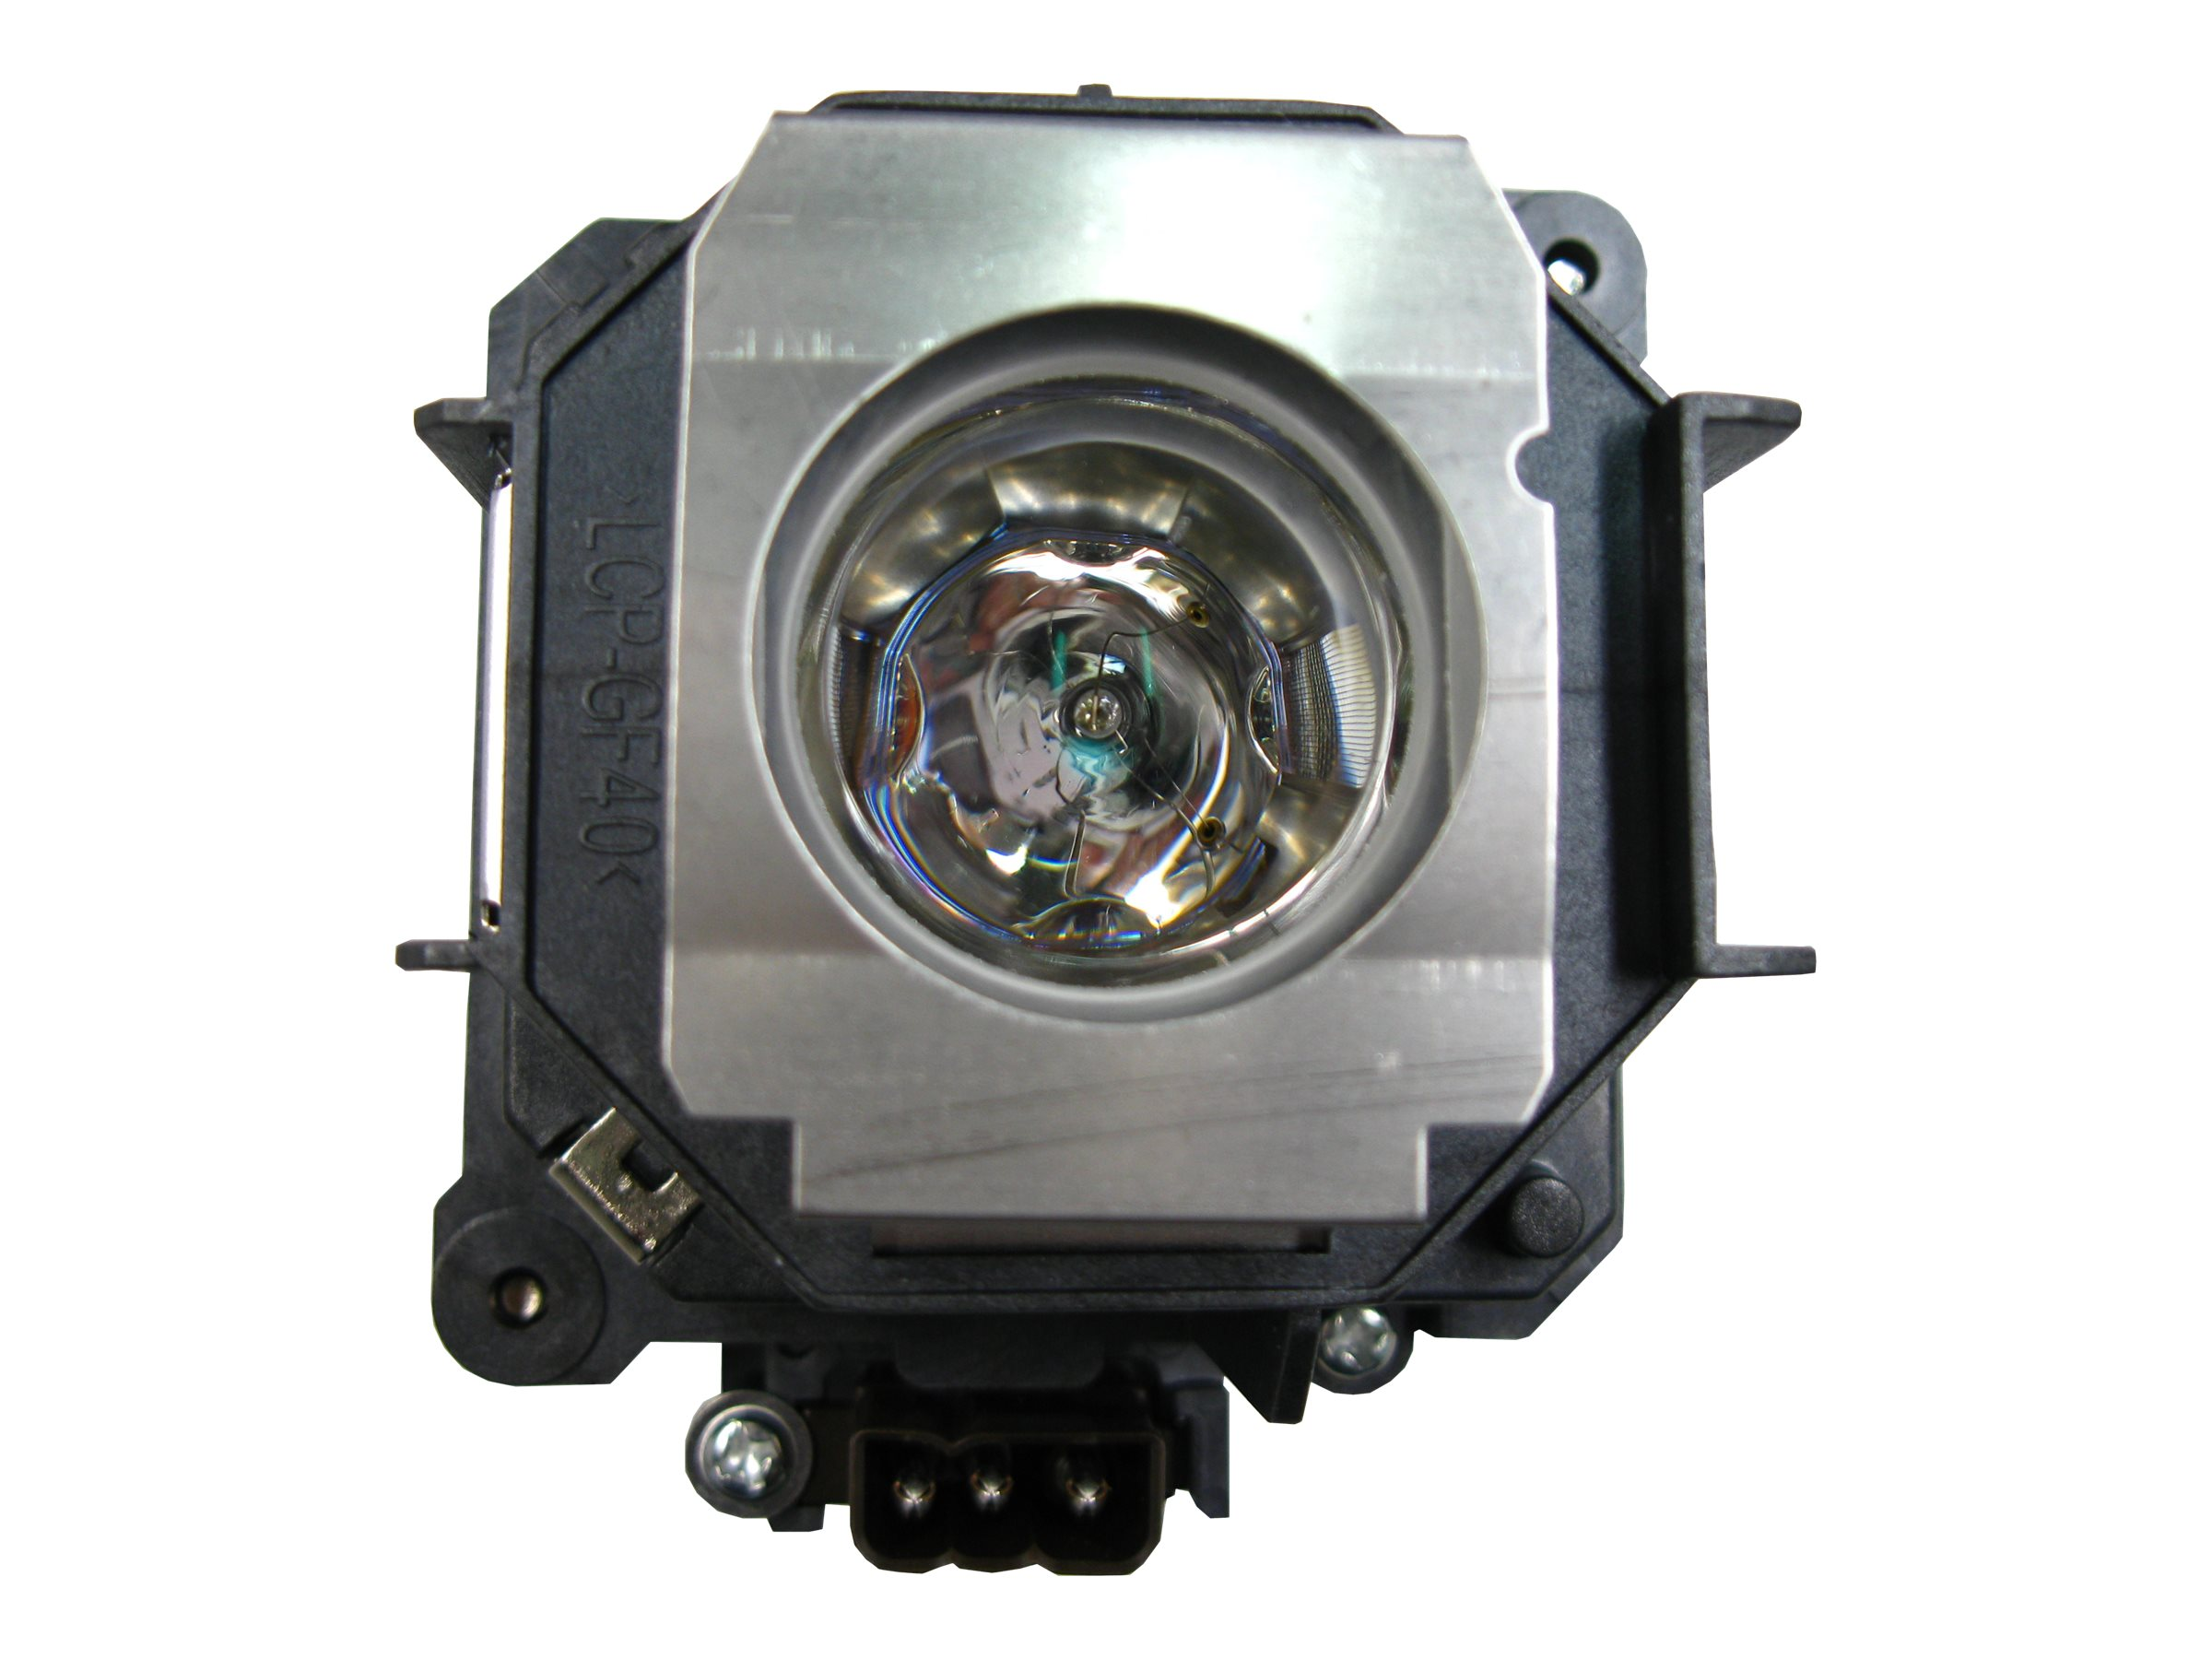 V7 Replacement Lamp for EB-G5200, EB-G5300, EB-G5350